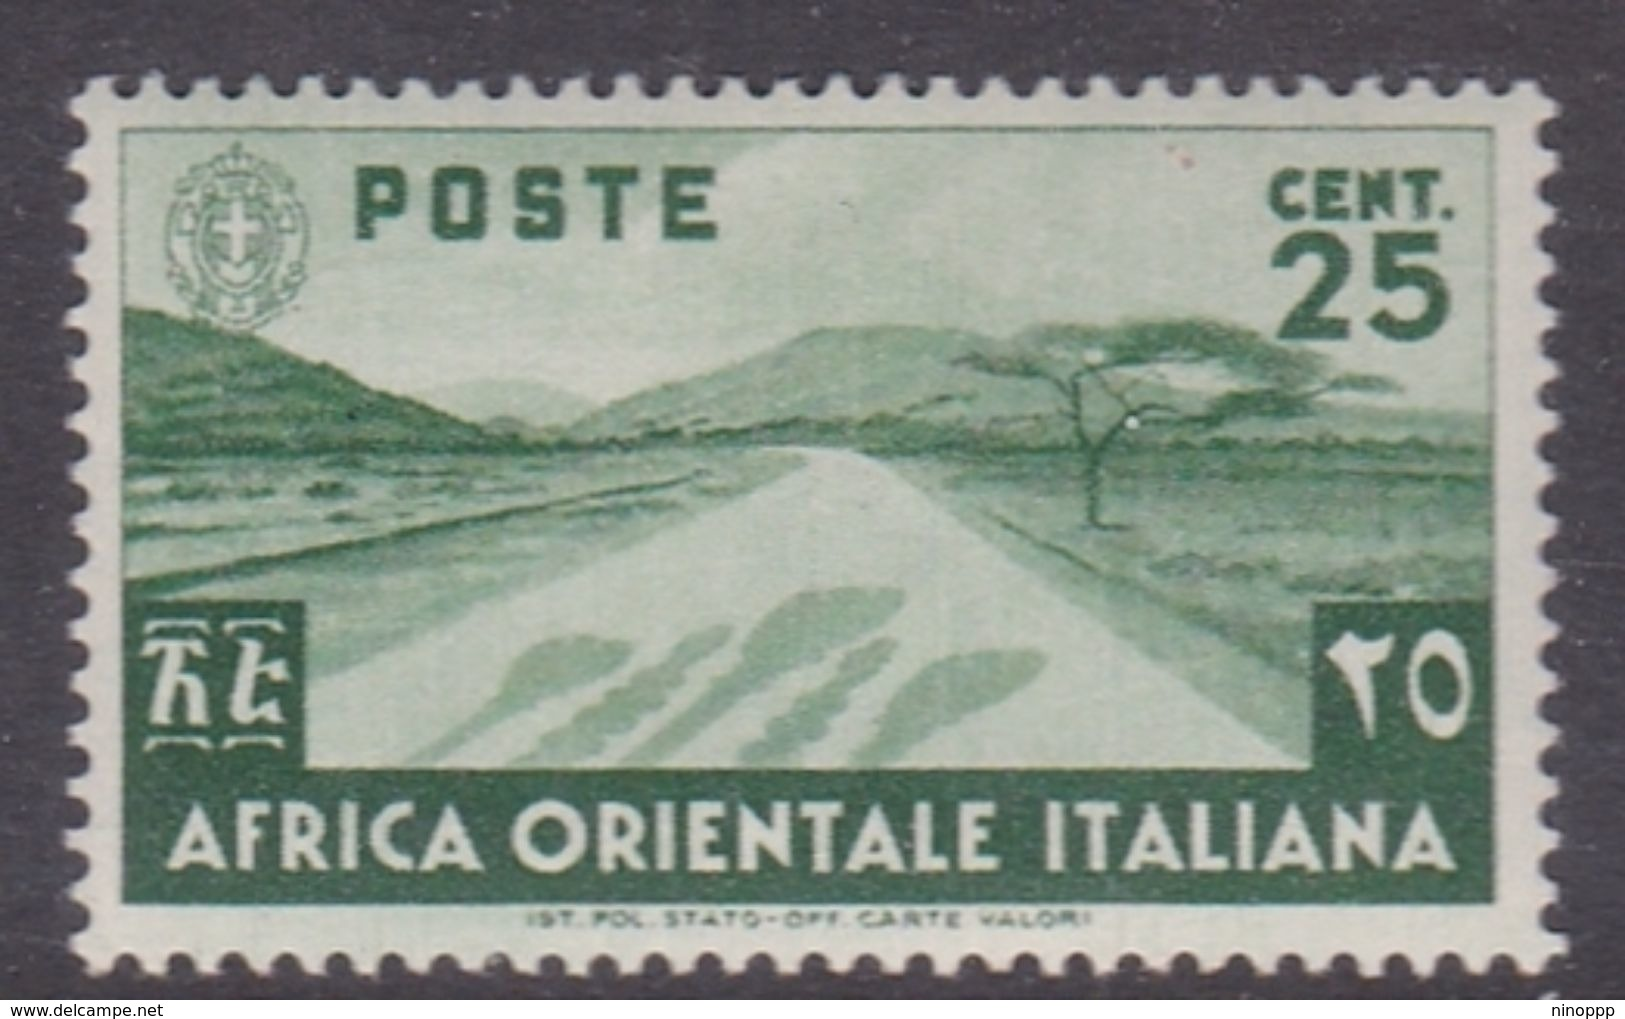 Italy-Colonies And Territories-Italian Eastern Africa S7 1938 25c Green MH - Italy